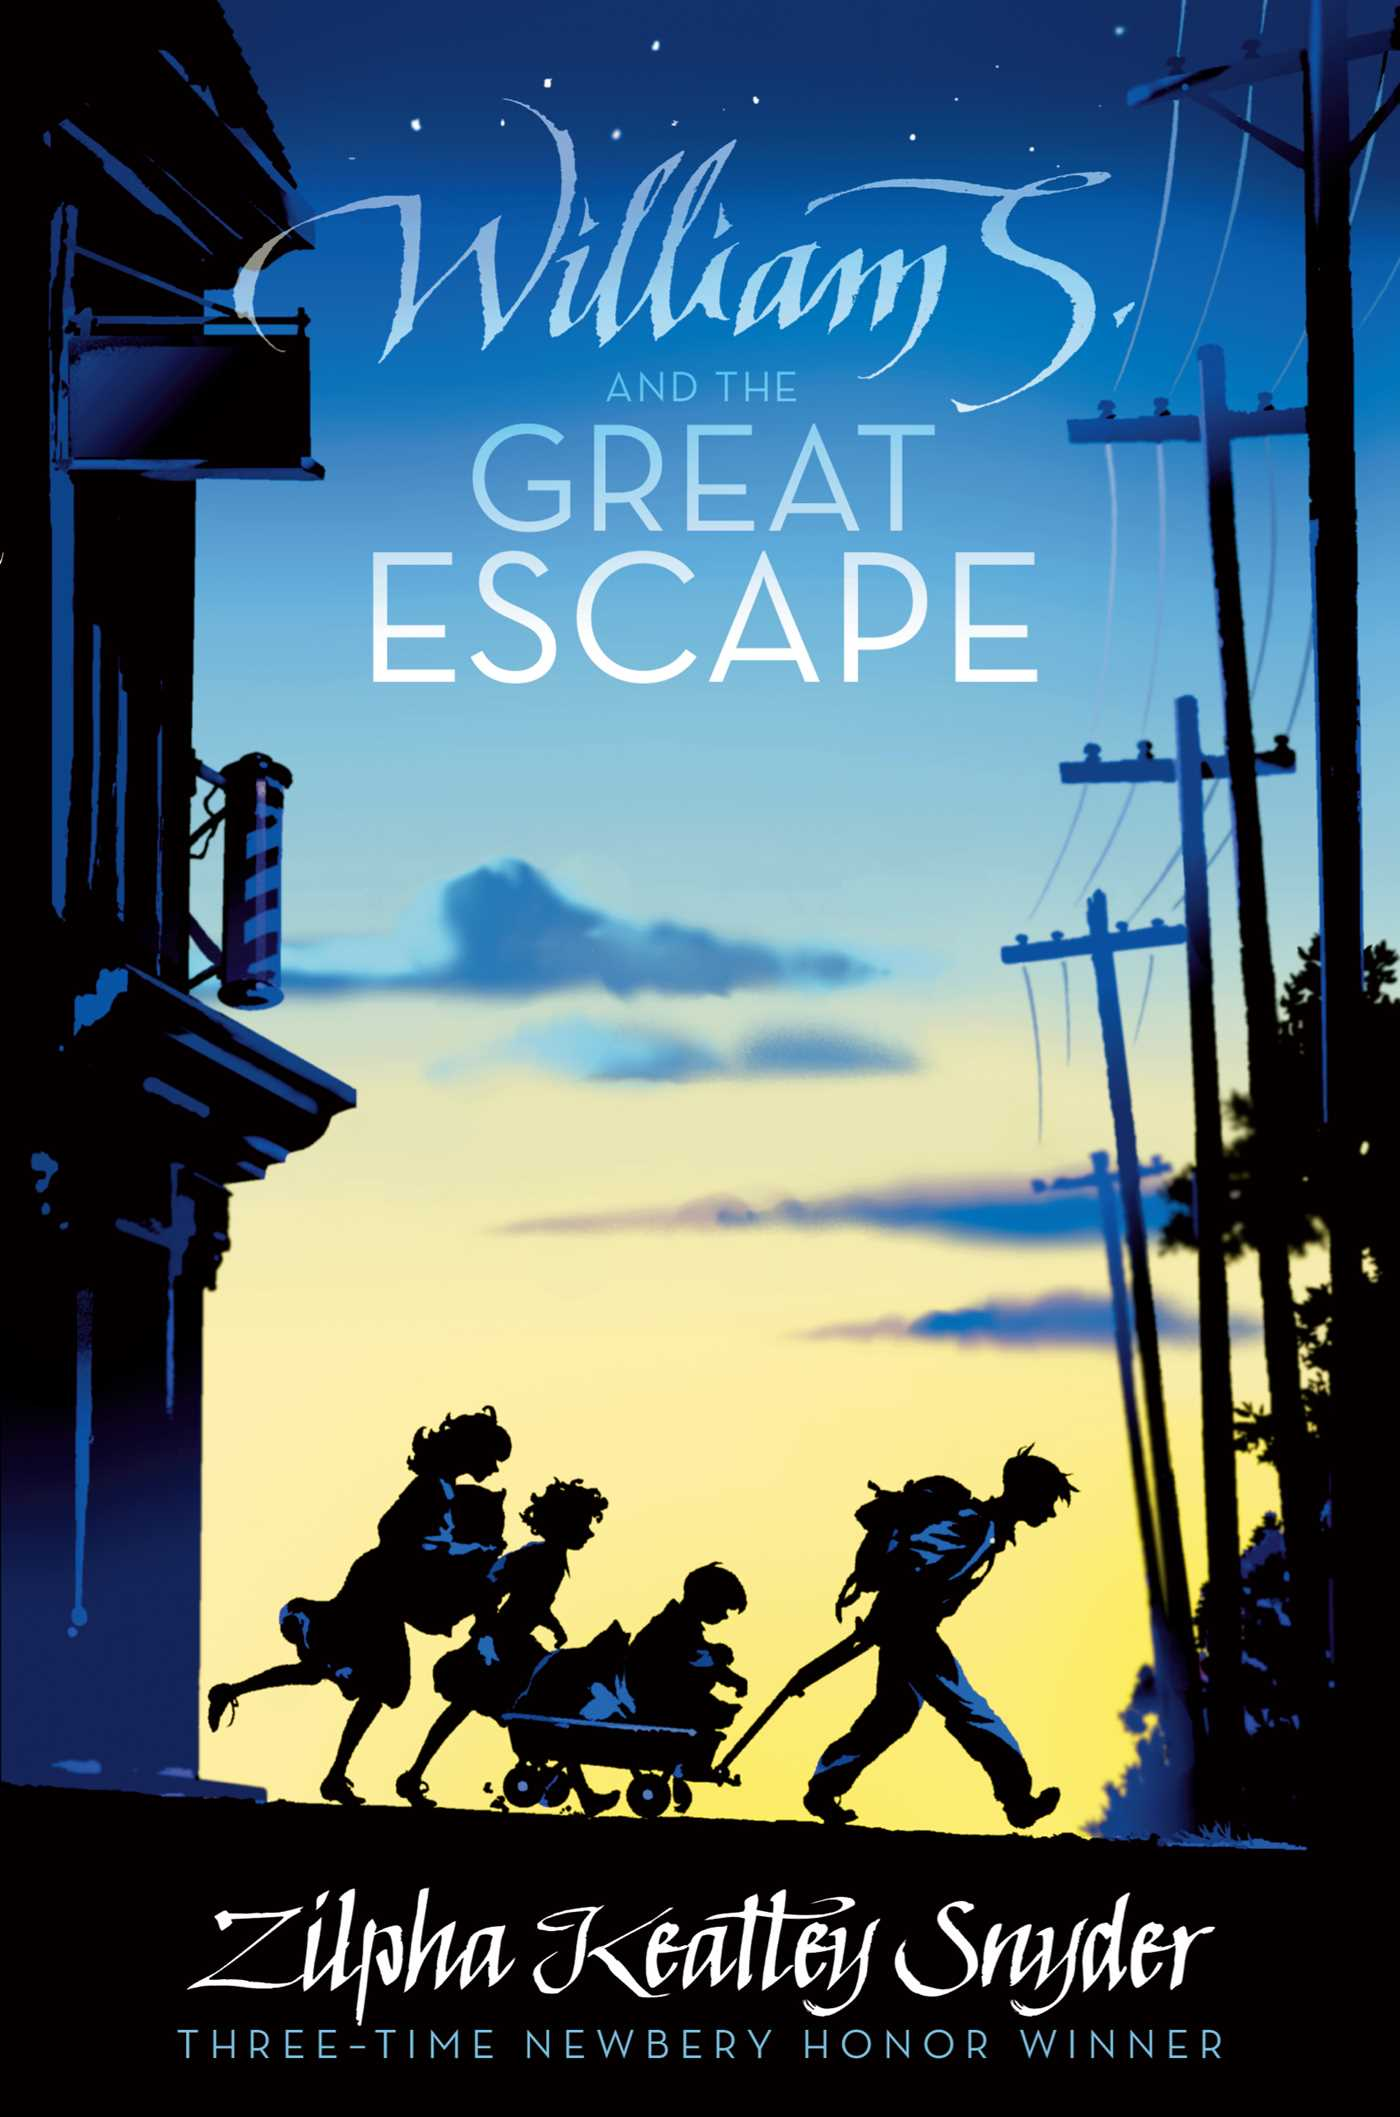 William s and the great escape 9781416997436 hr